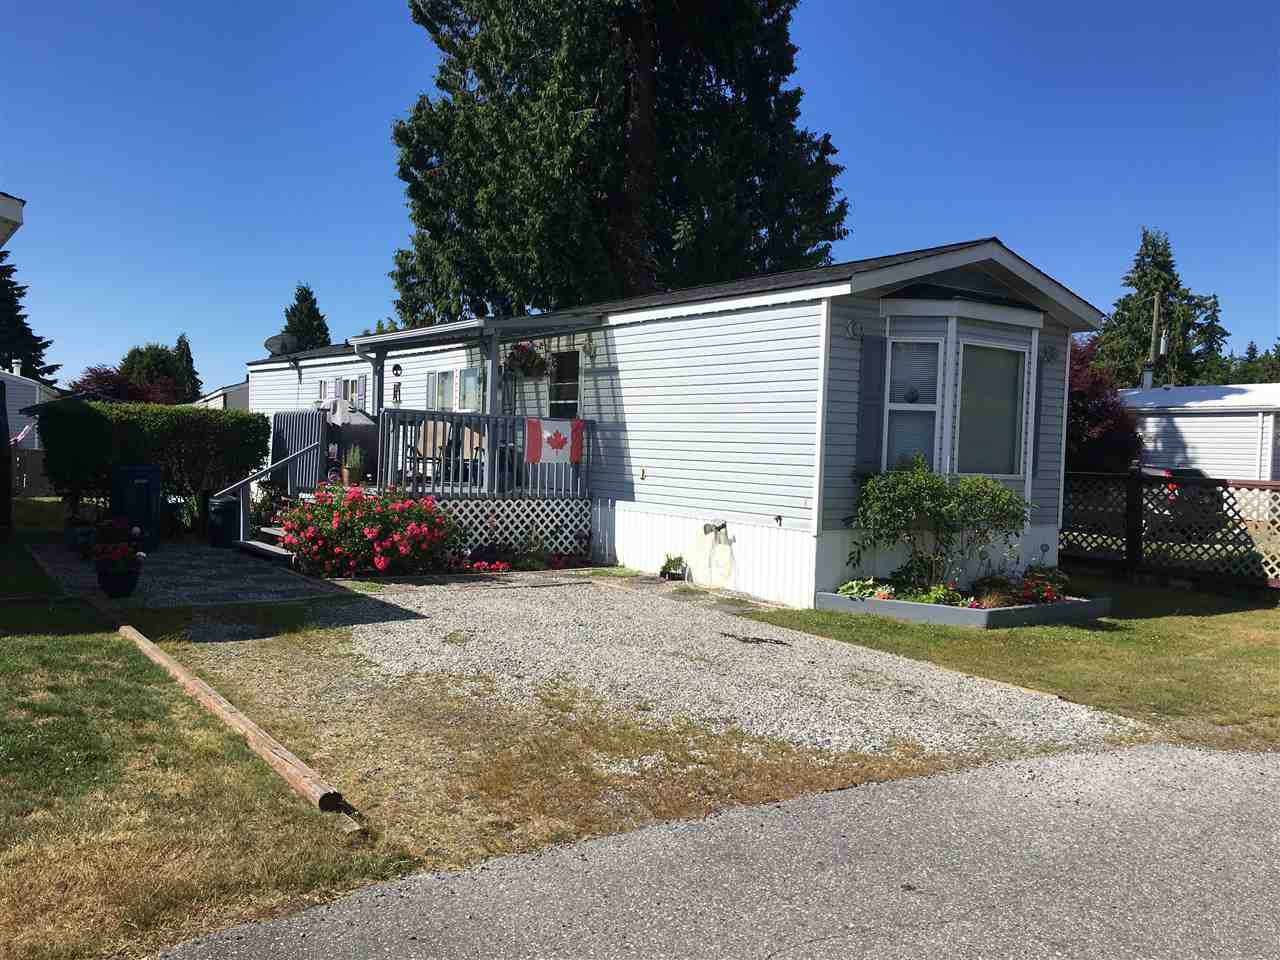 "Main Photo: 24 5575 MASON Road in Sechelt: Sechelt District Manufactured Home for sale in ""R5"" (Sunshine Coast)  : MLS®# R2283764"